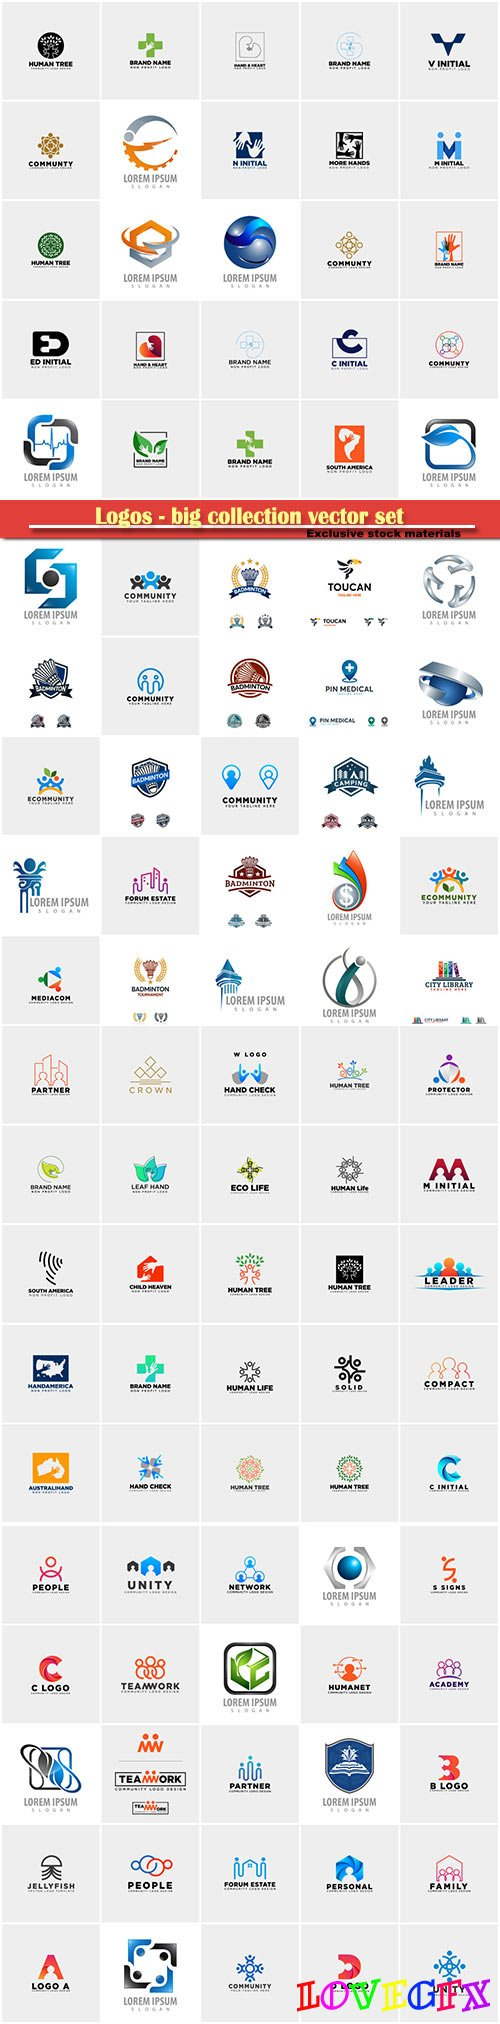 Logos - big collection vector set # 5